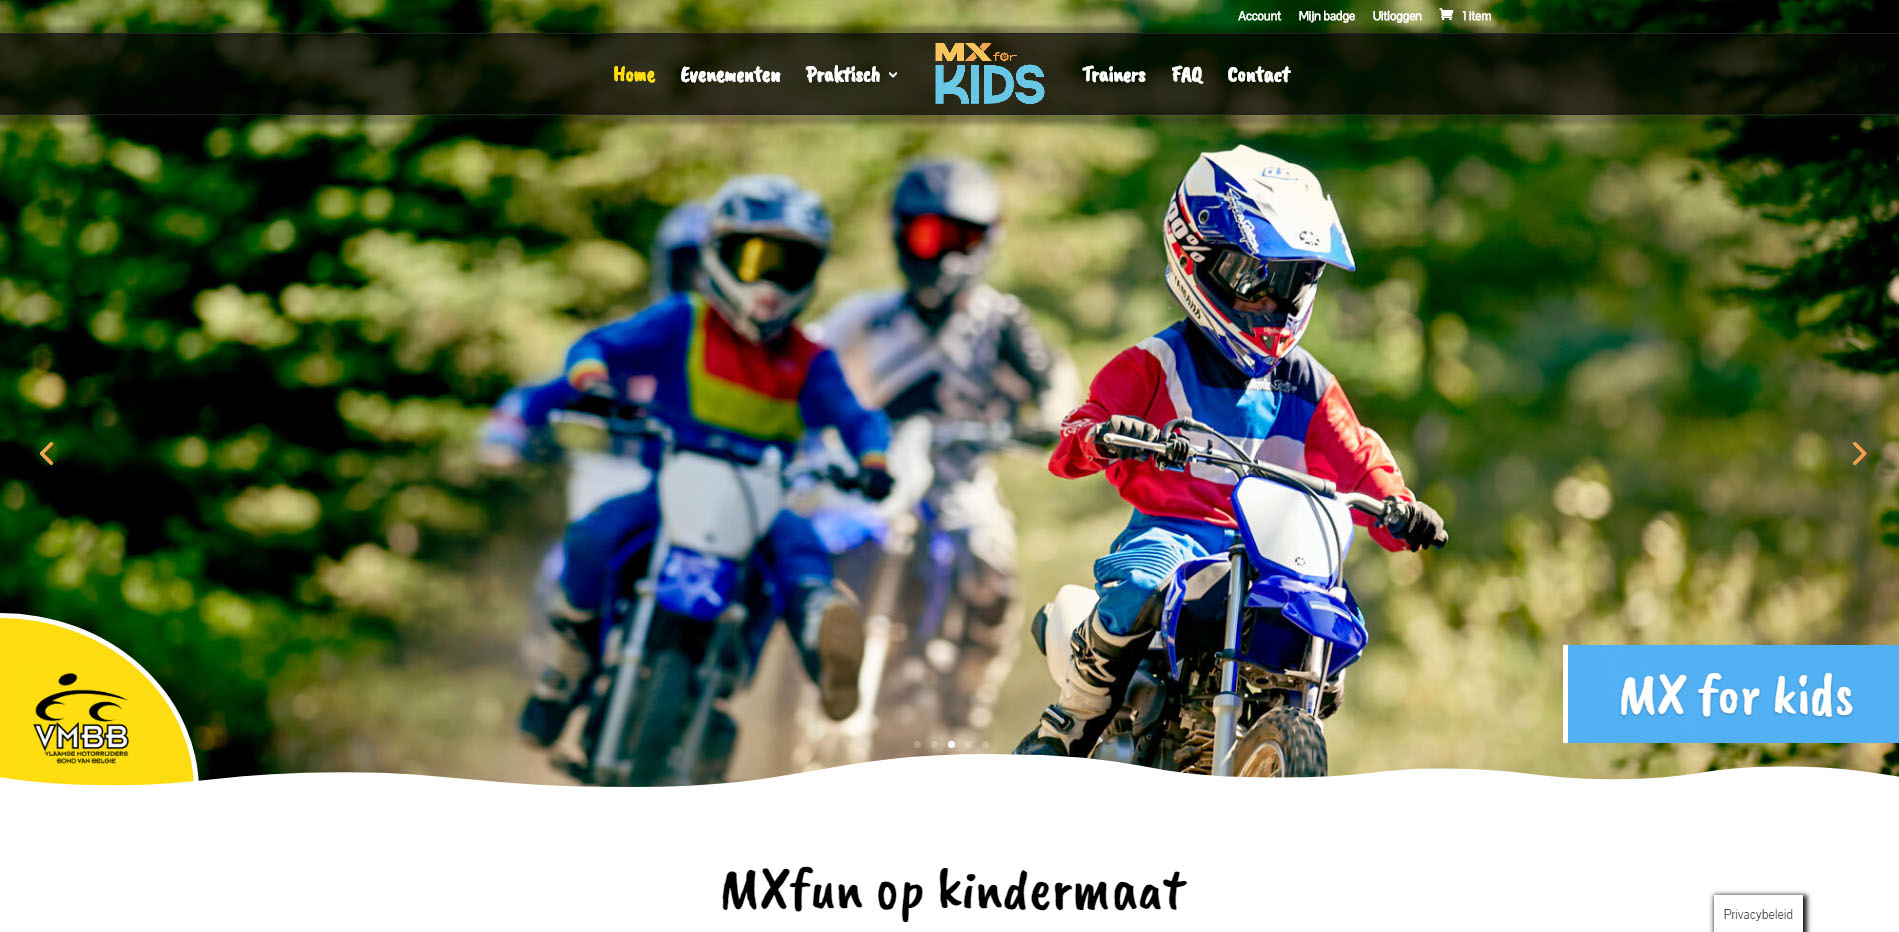 MX for kids